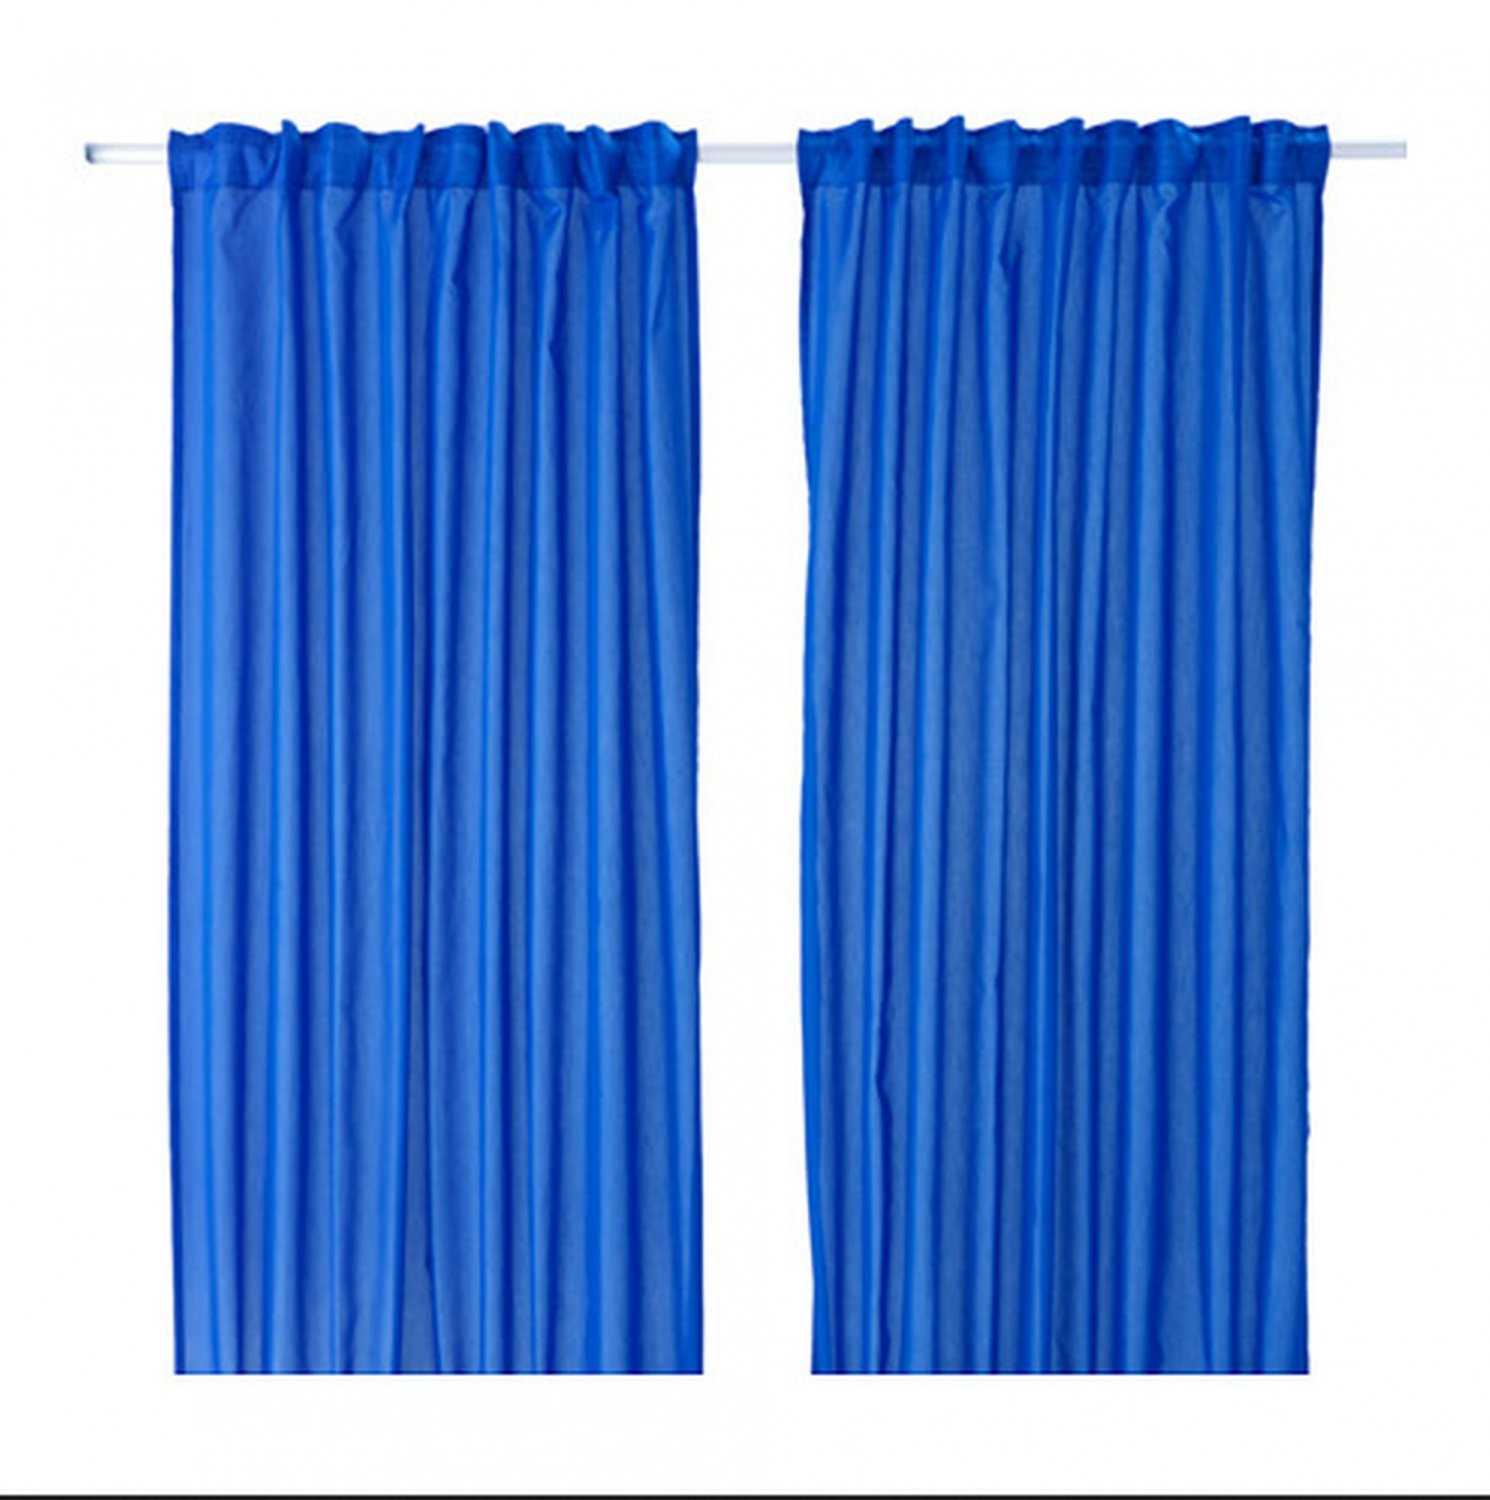 IKEA Vivan CURTAINS Drapes DARK BLUE 2 Panels 98quot; Length Bright Bleu